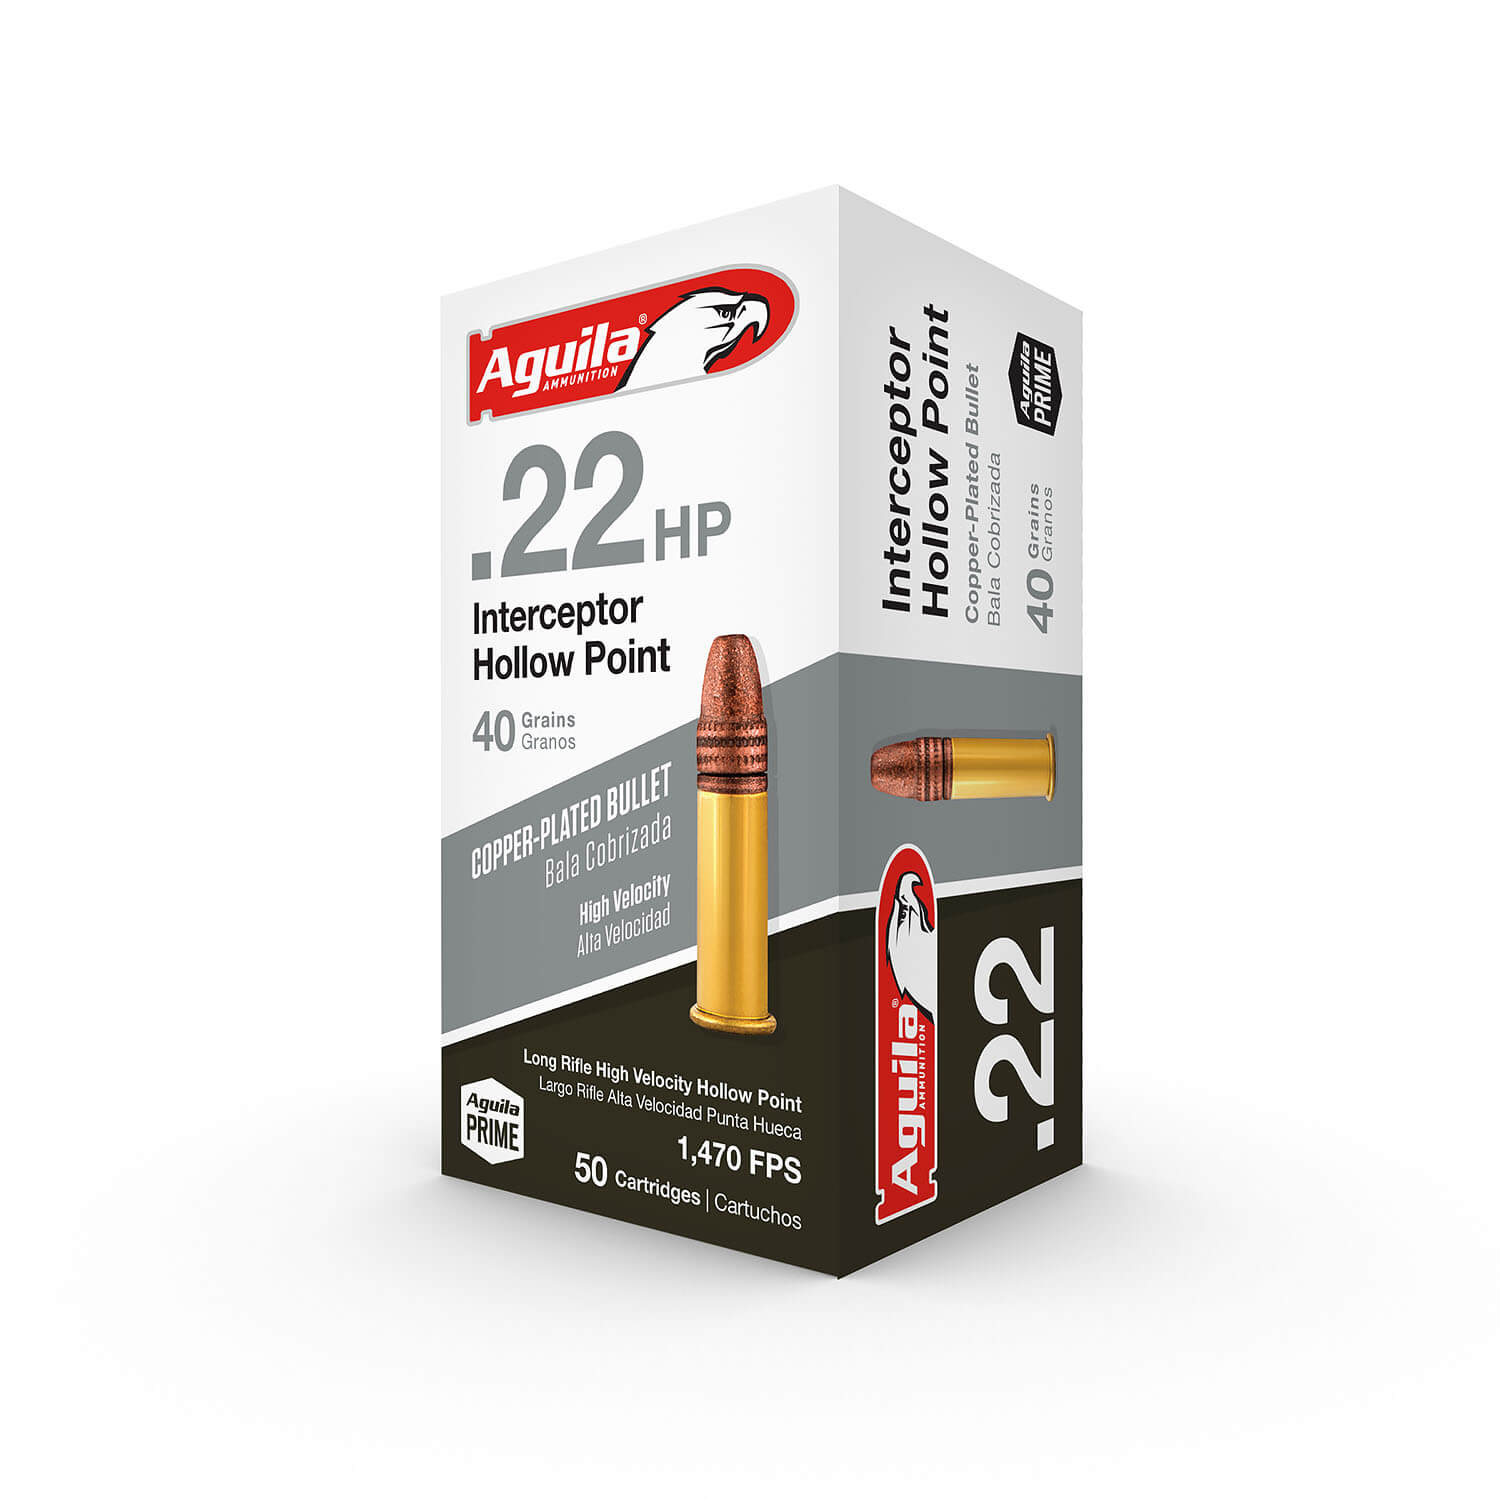 Aguila .22 LR Interceptor Hollow Point 40 gr,448 m/s